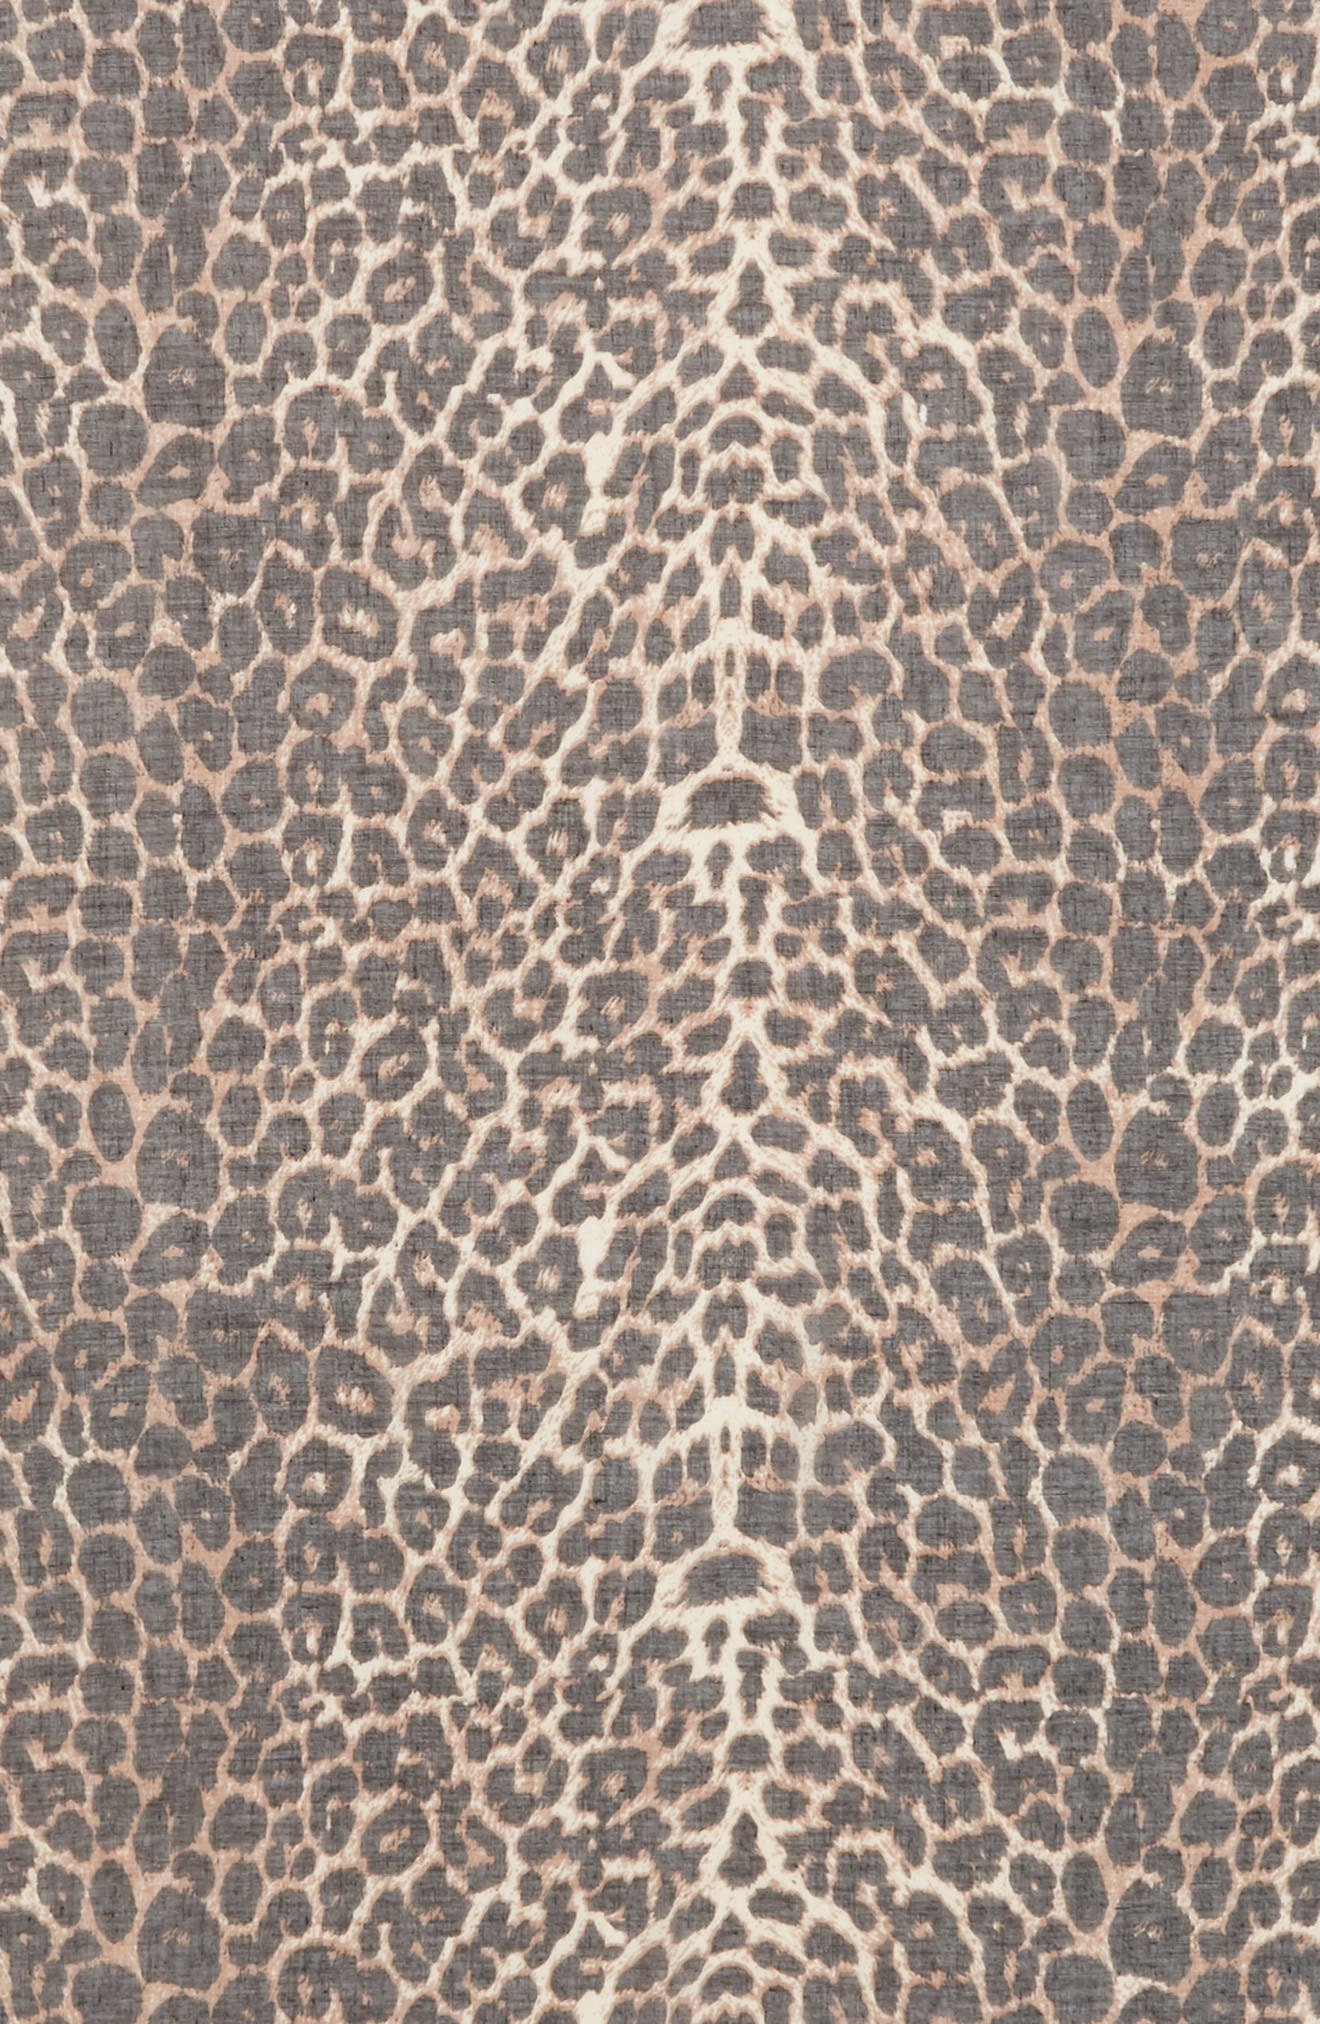 Leopard Print Oblong Scarf,                             Alternate thumbnail 4, color,                             BROWN MULTI